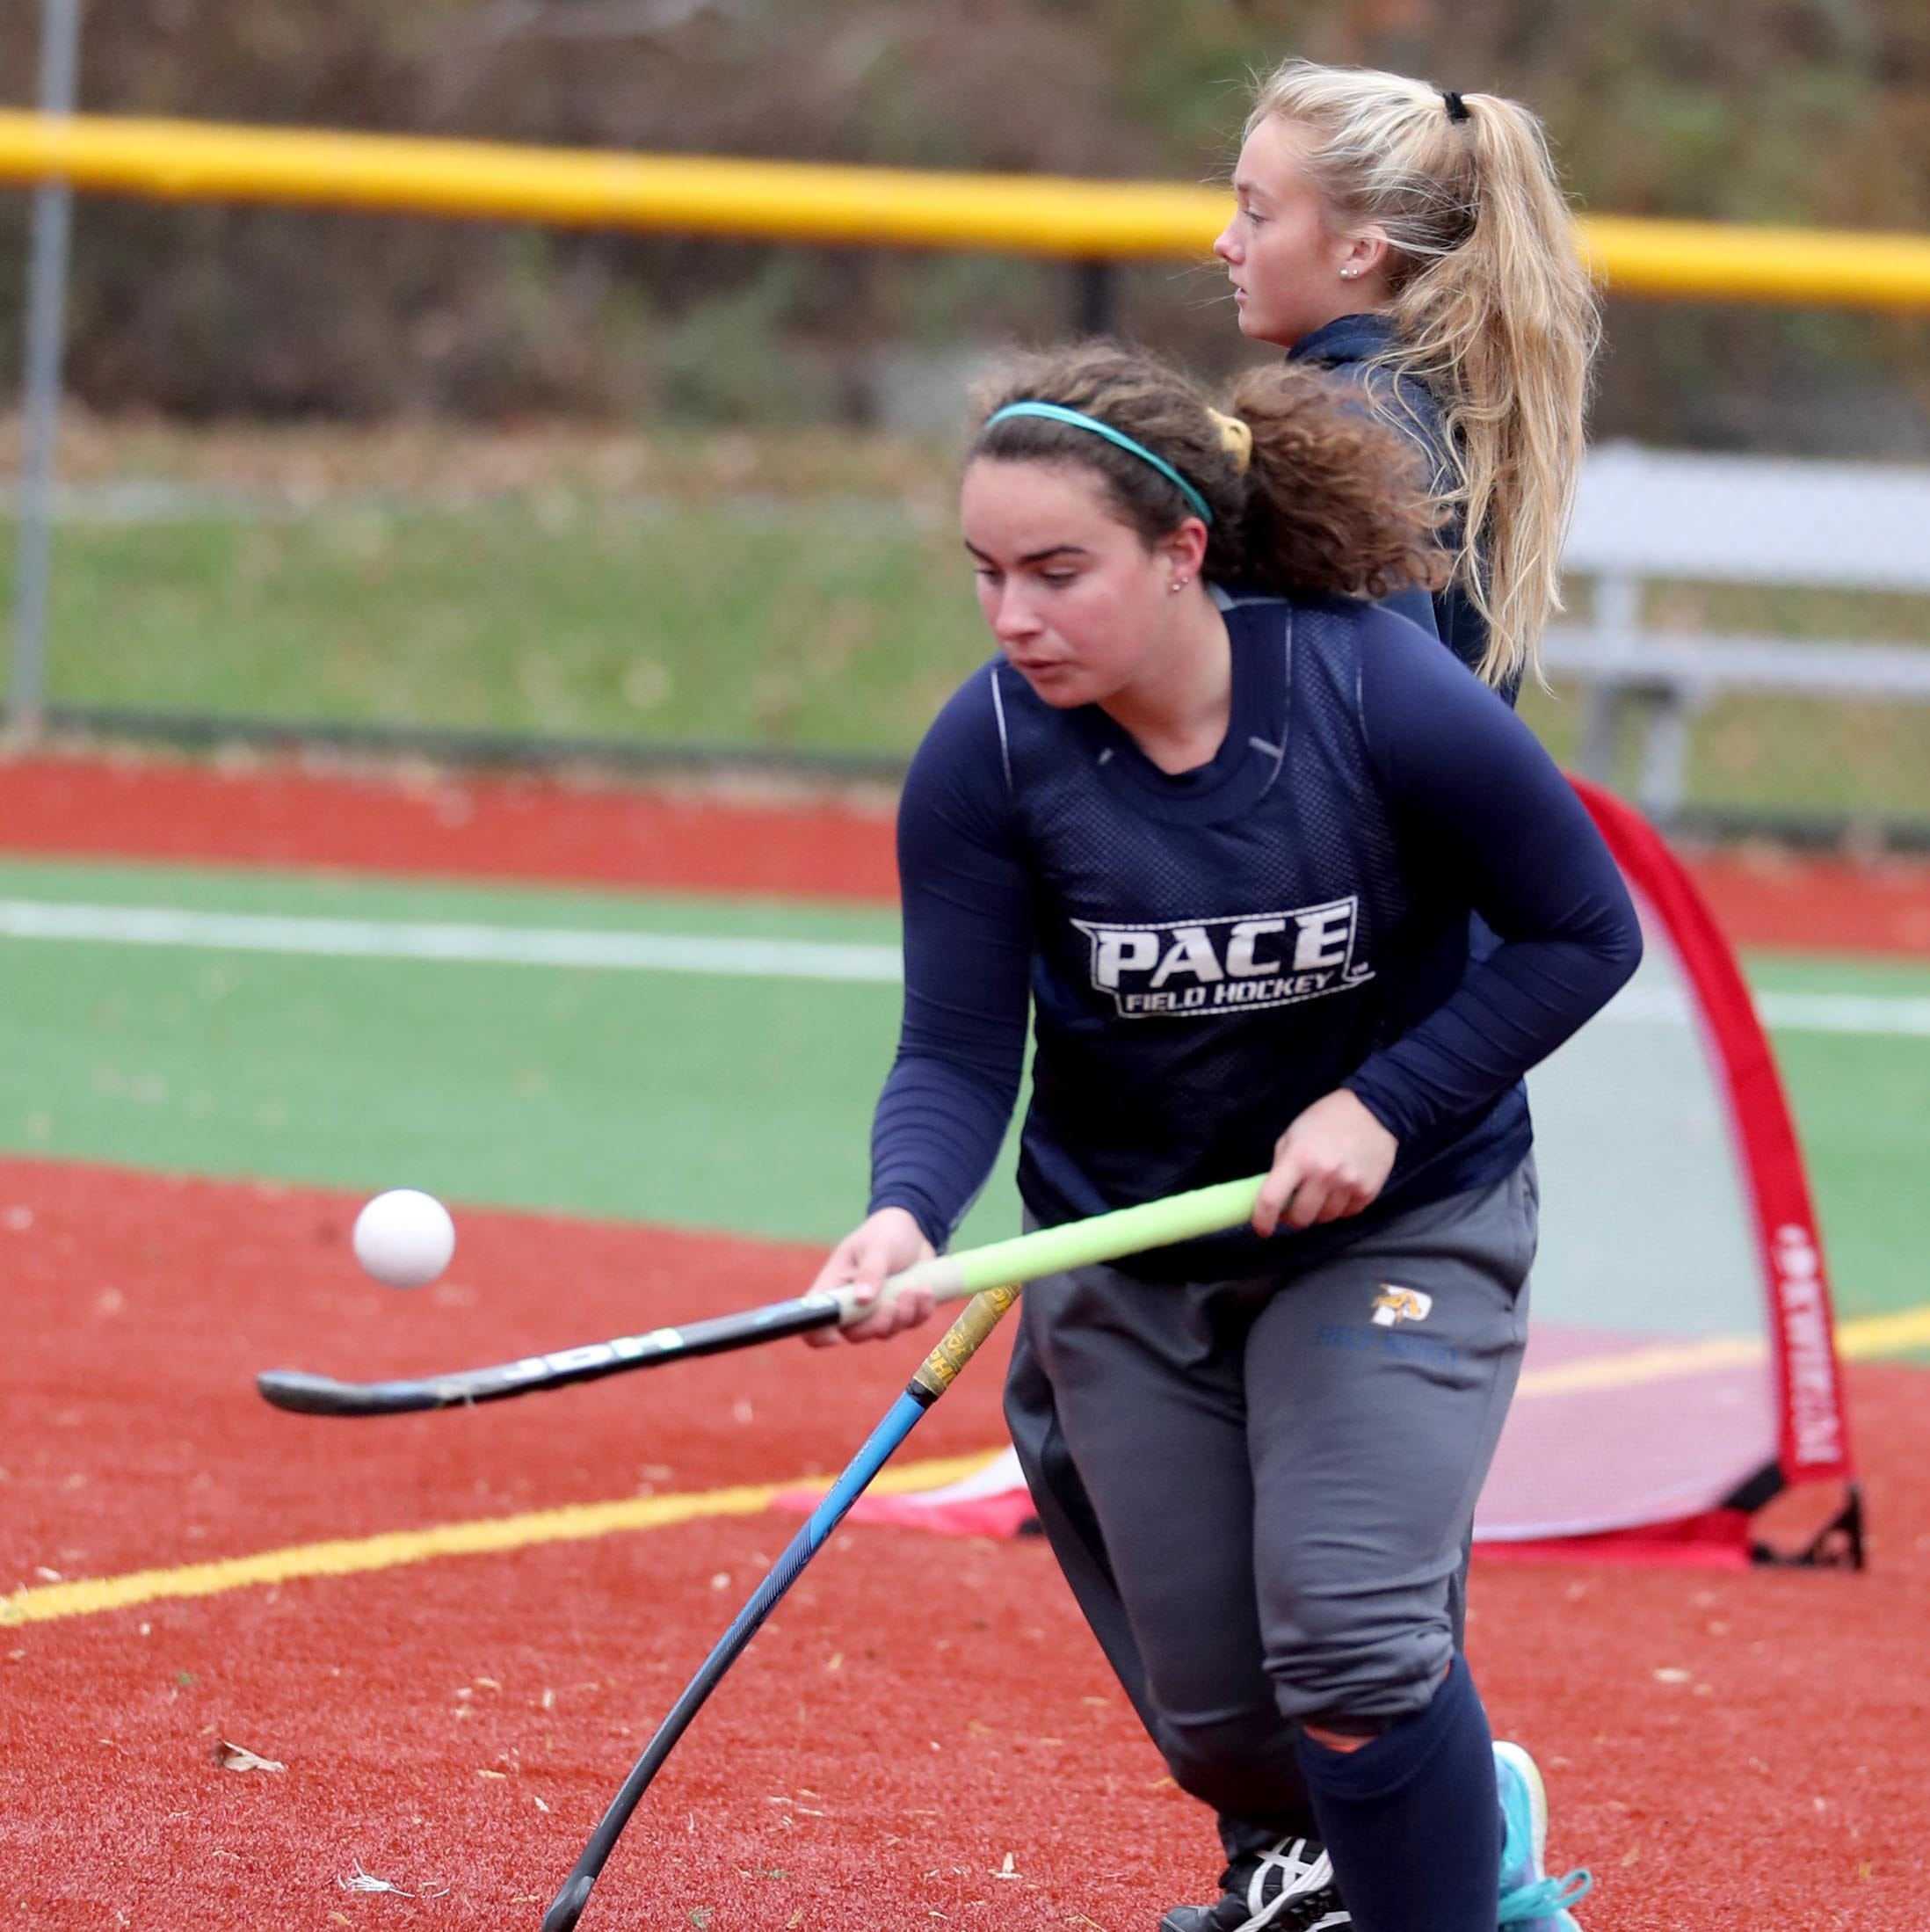 Field hockey: Pace University, with former local HS stars, is ranked second in country